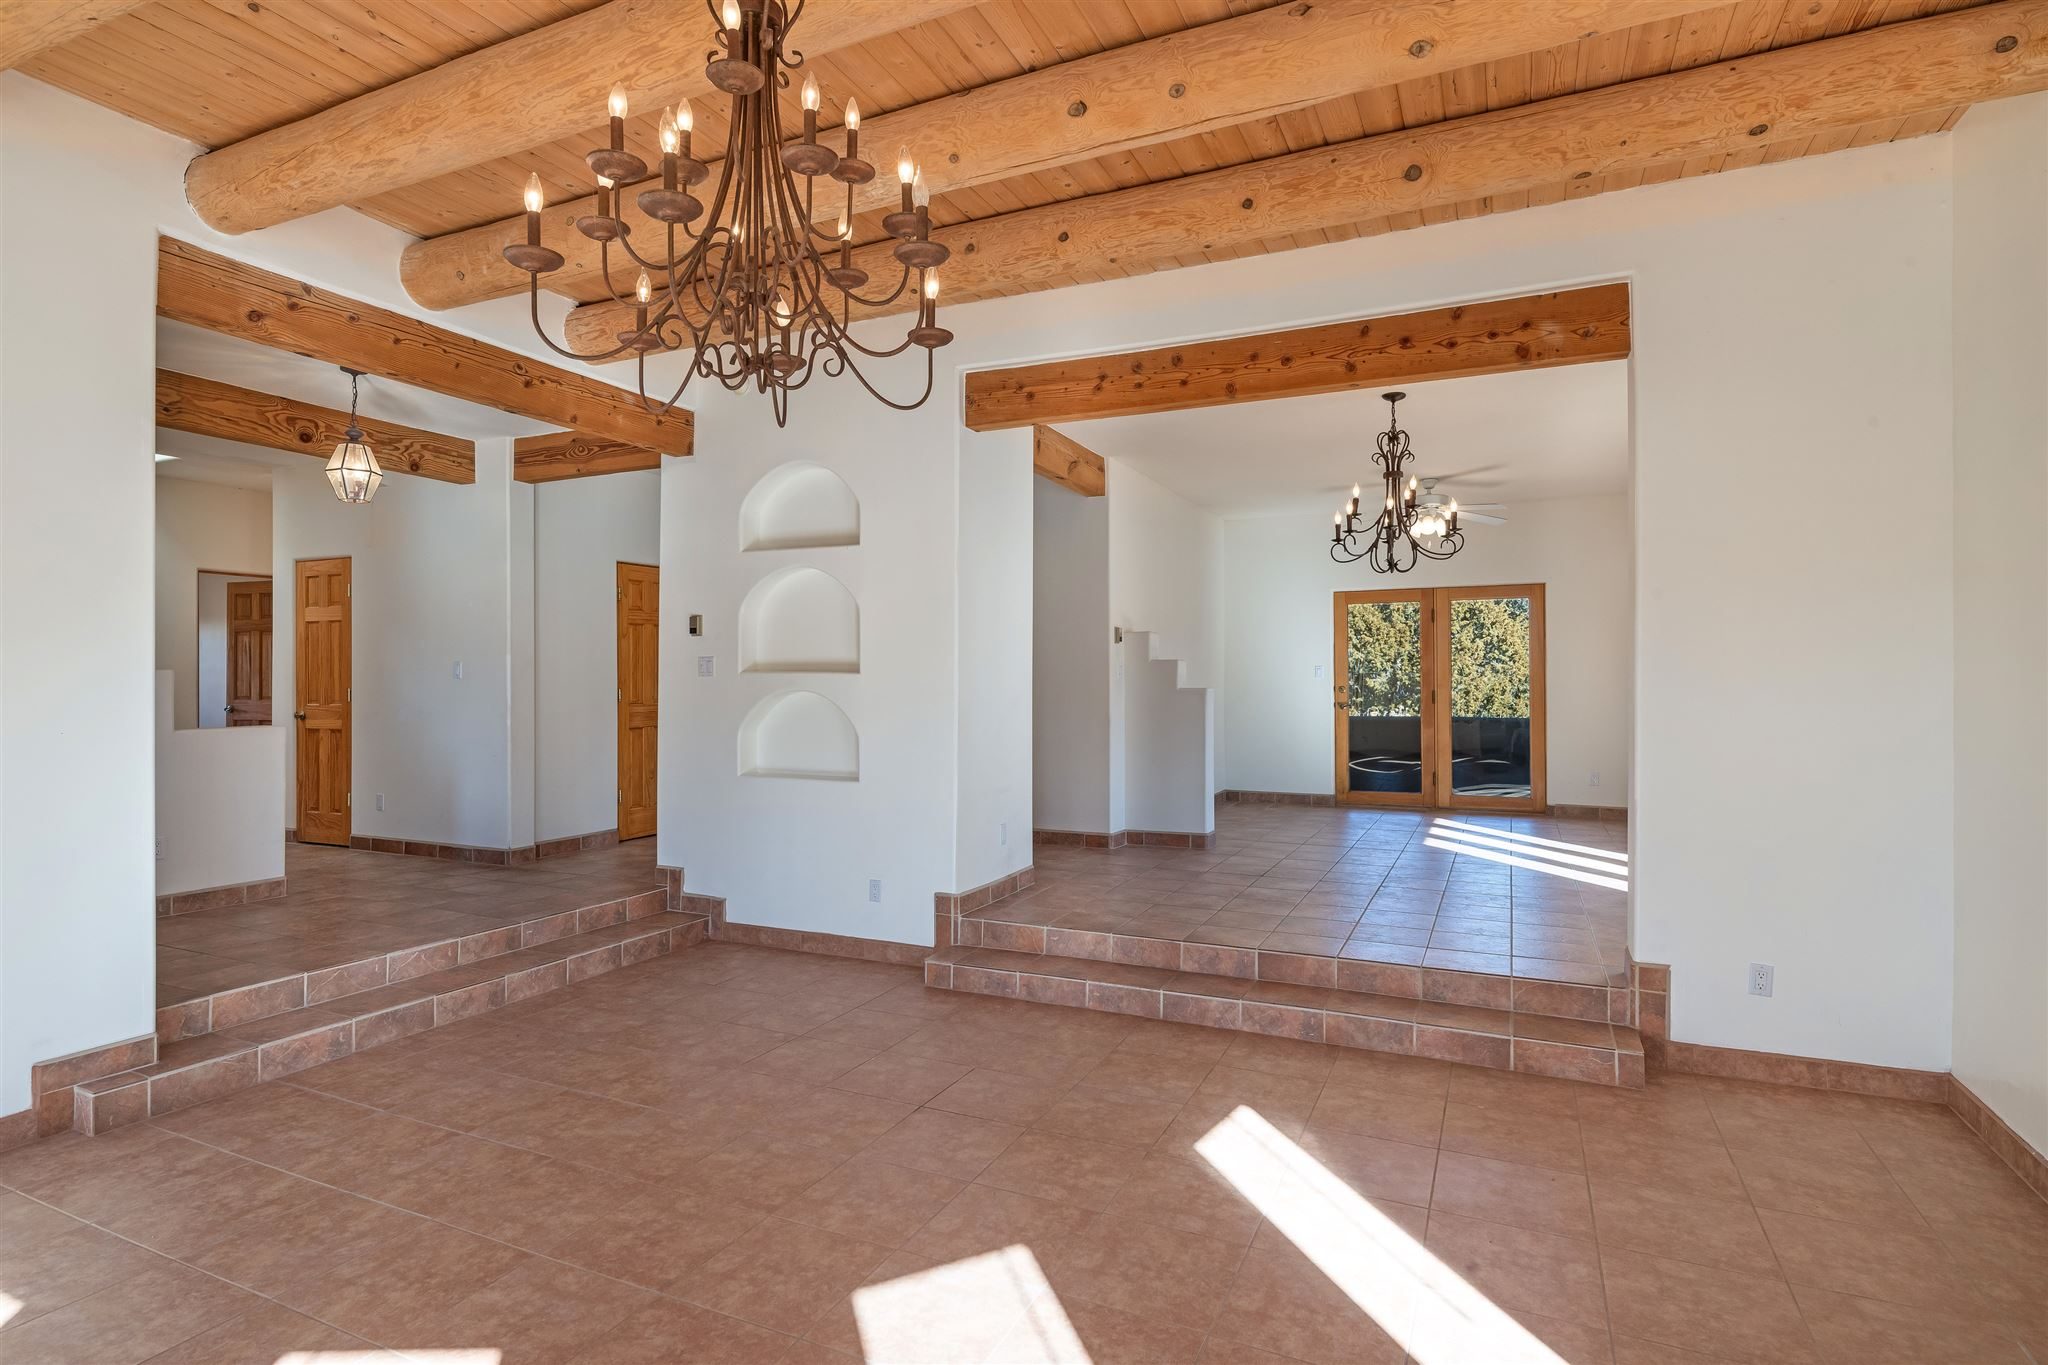 Santa Fe Style, light filled home with big Sangre de Cristo Mountain views from your private back yard. Warm and inviting, this home enjoys large living spaces that flow easily between one another and the outdoors; a comfortable kitchen with pantry, dining room and great room, vigas and wood floors. The master bedroom is oversized, with a walk-in closet and spa bathroom. There are two additional bedrooms, a second bath and office area.  Enjoy the 2,269 square feet of living space with quality windows, skylights, radiant heat and much more! The finished 3 car garage with separate entrance allows for storage or hobbies.  You will love the being centrally located in the wonderful neighborhood.